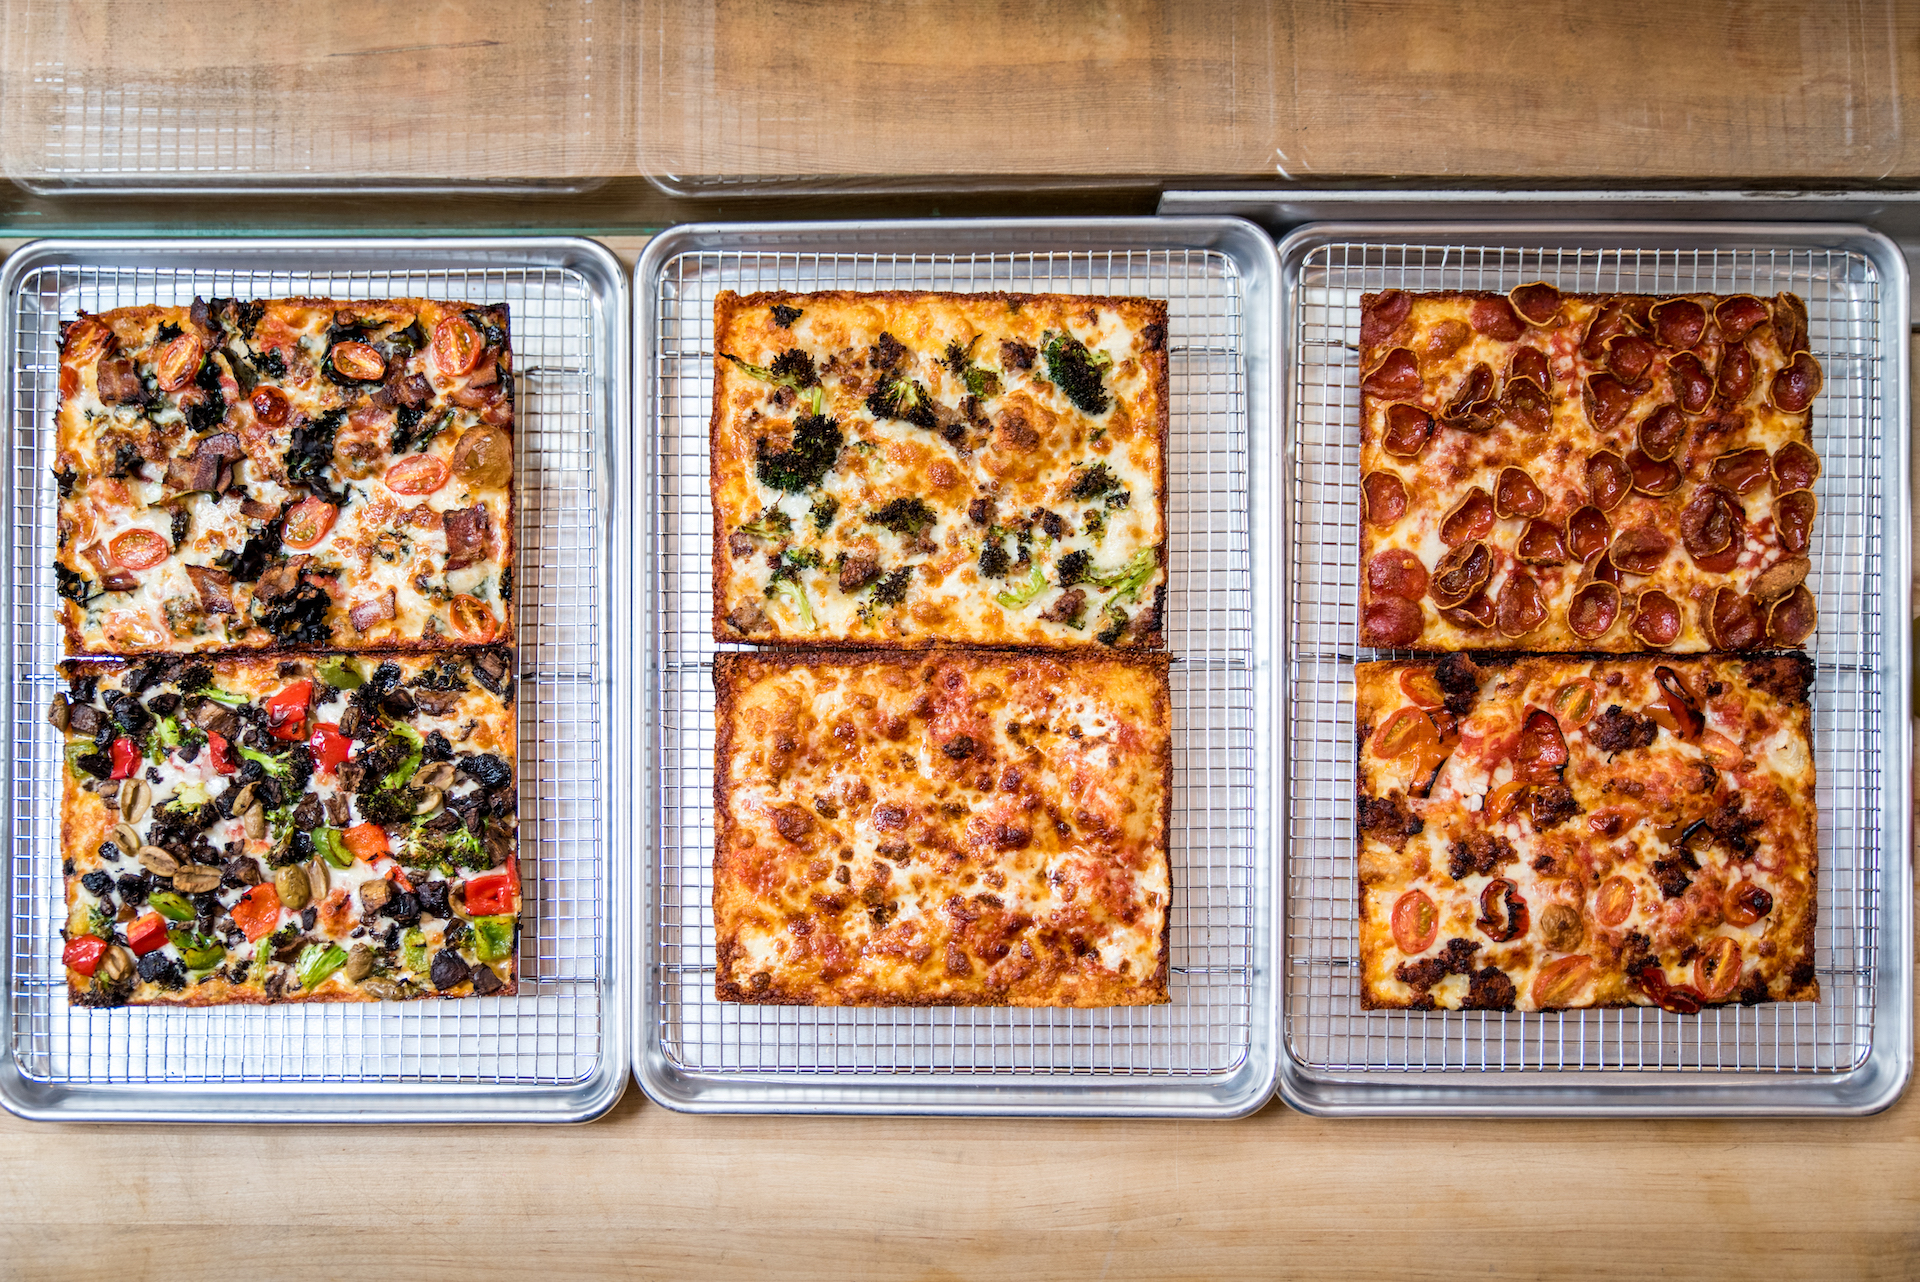 Pizza options at the new restaurant.